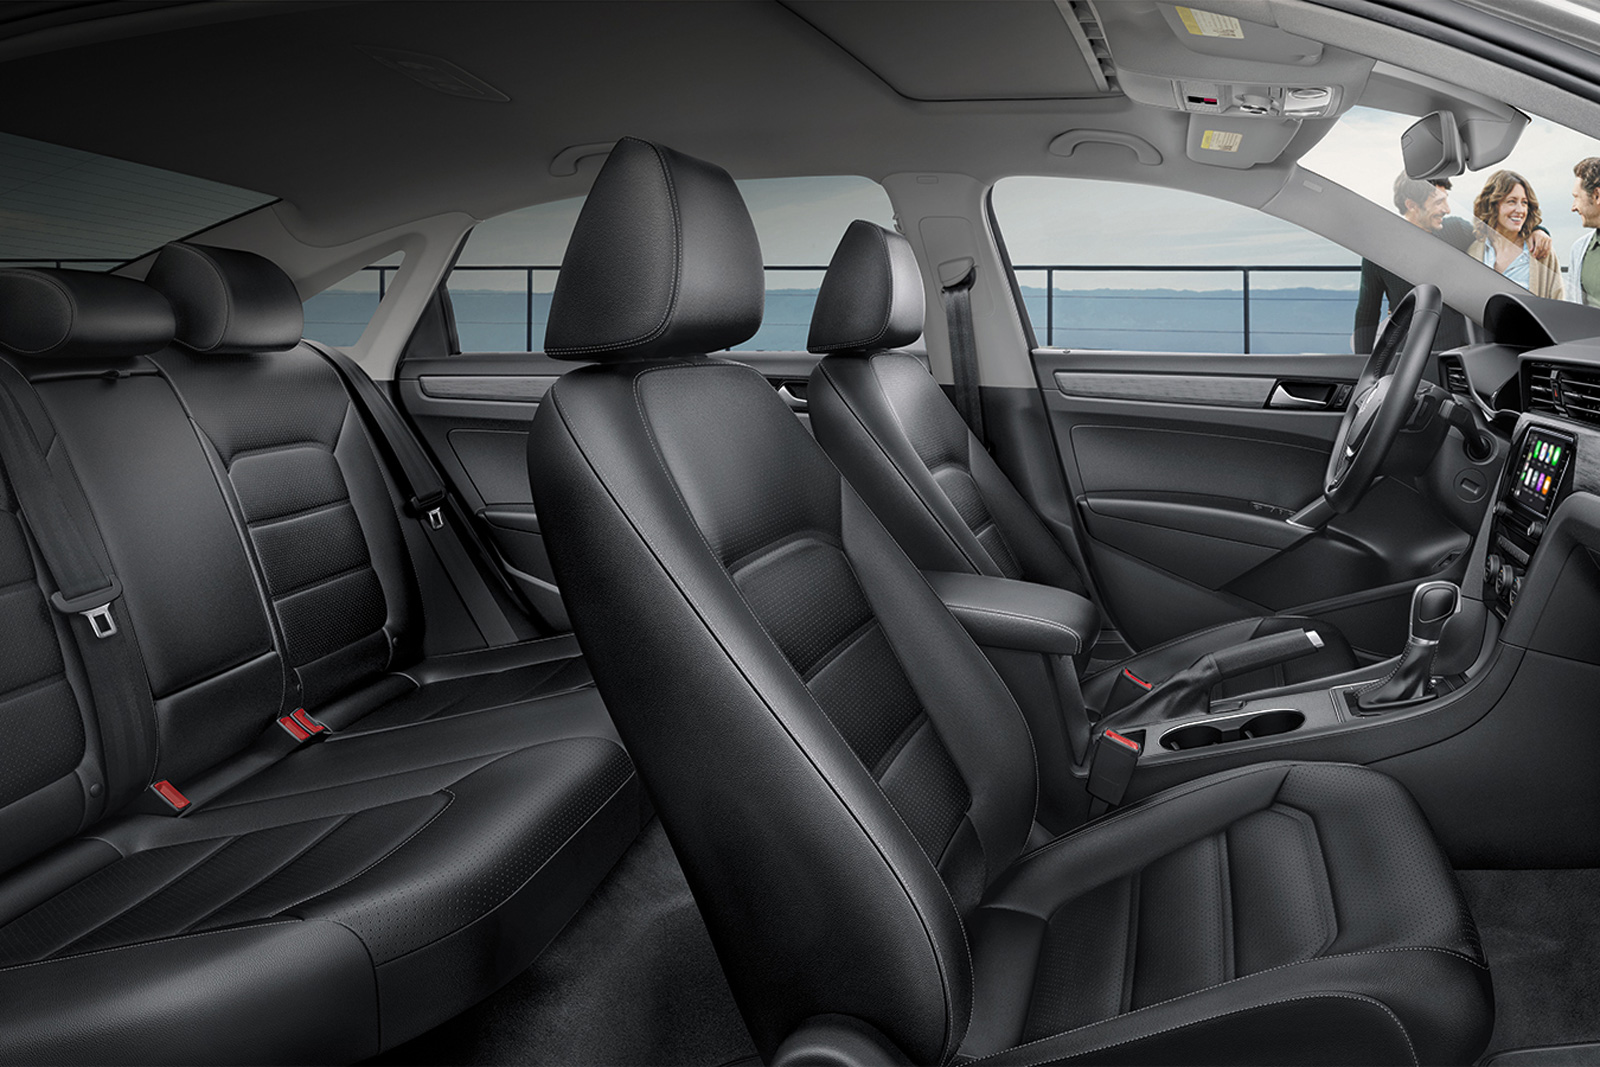 Upscale Cabin of the 2020 VW Passat